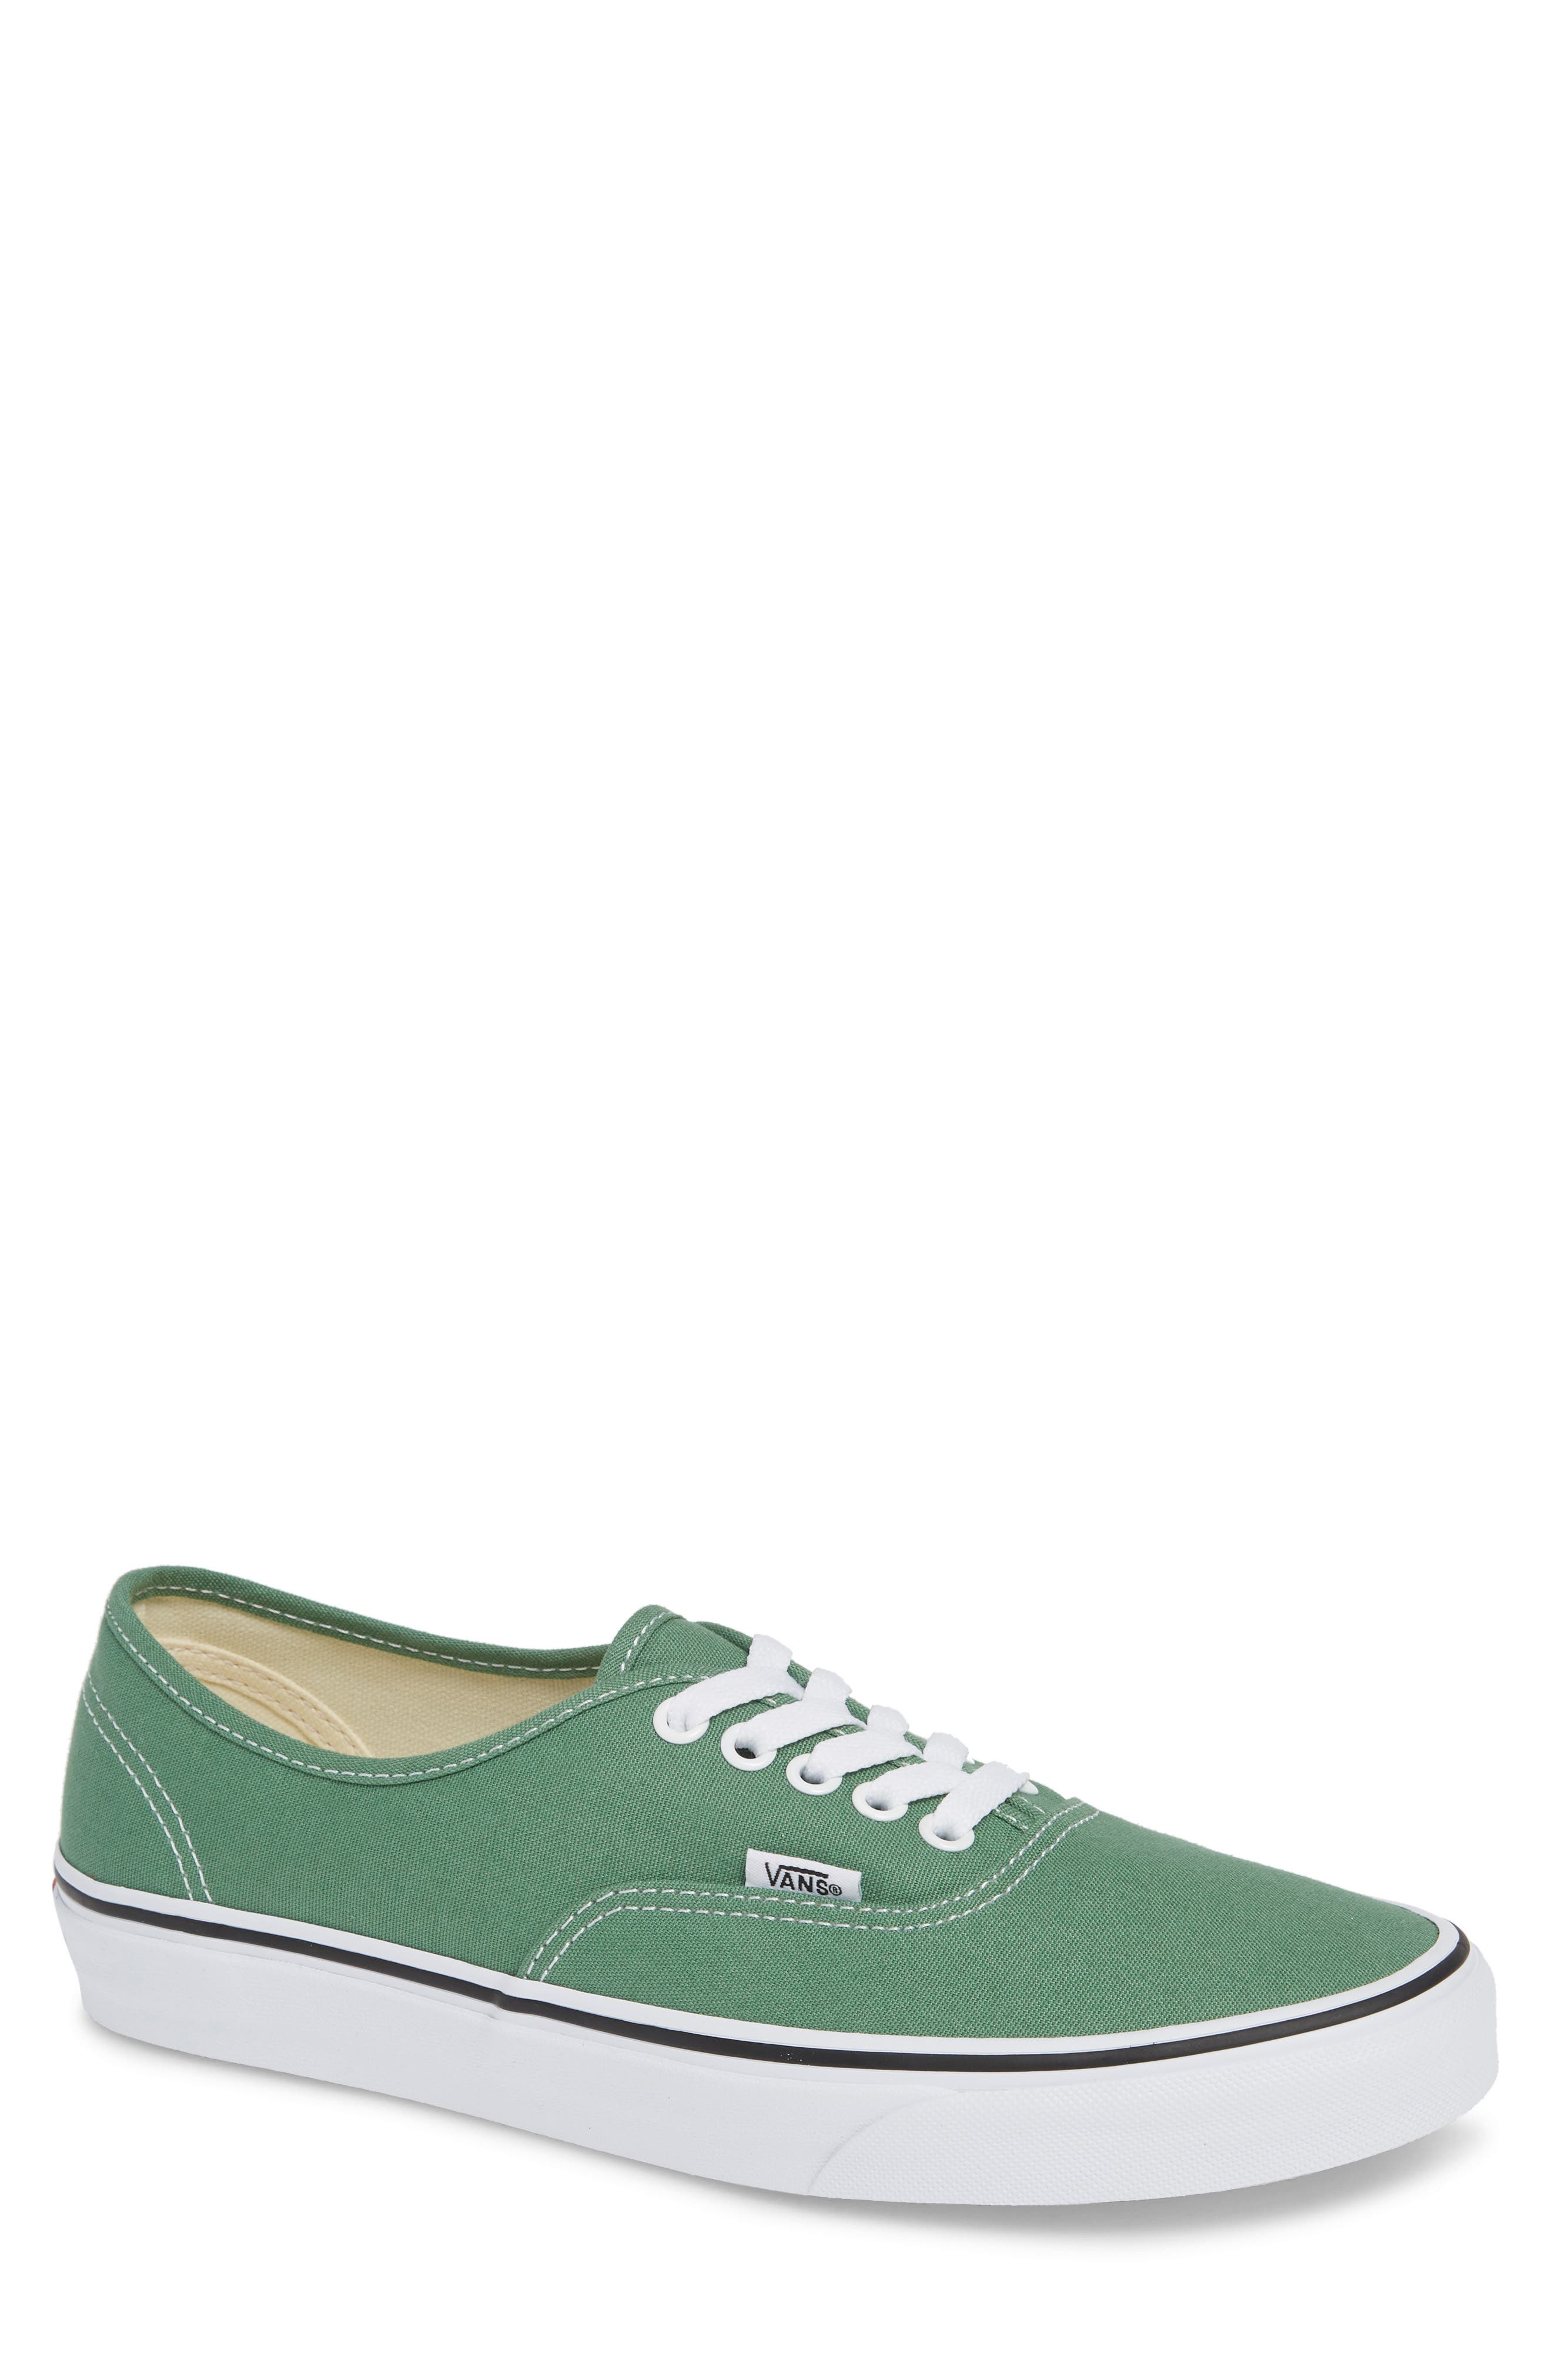 VANS,                             'Authentic' Sneaker,                             Main thumbnail 1, color,                             DEEP GRASS GREEN/ TRUE WHITE